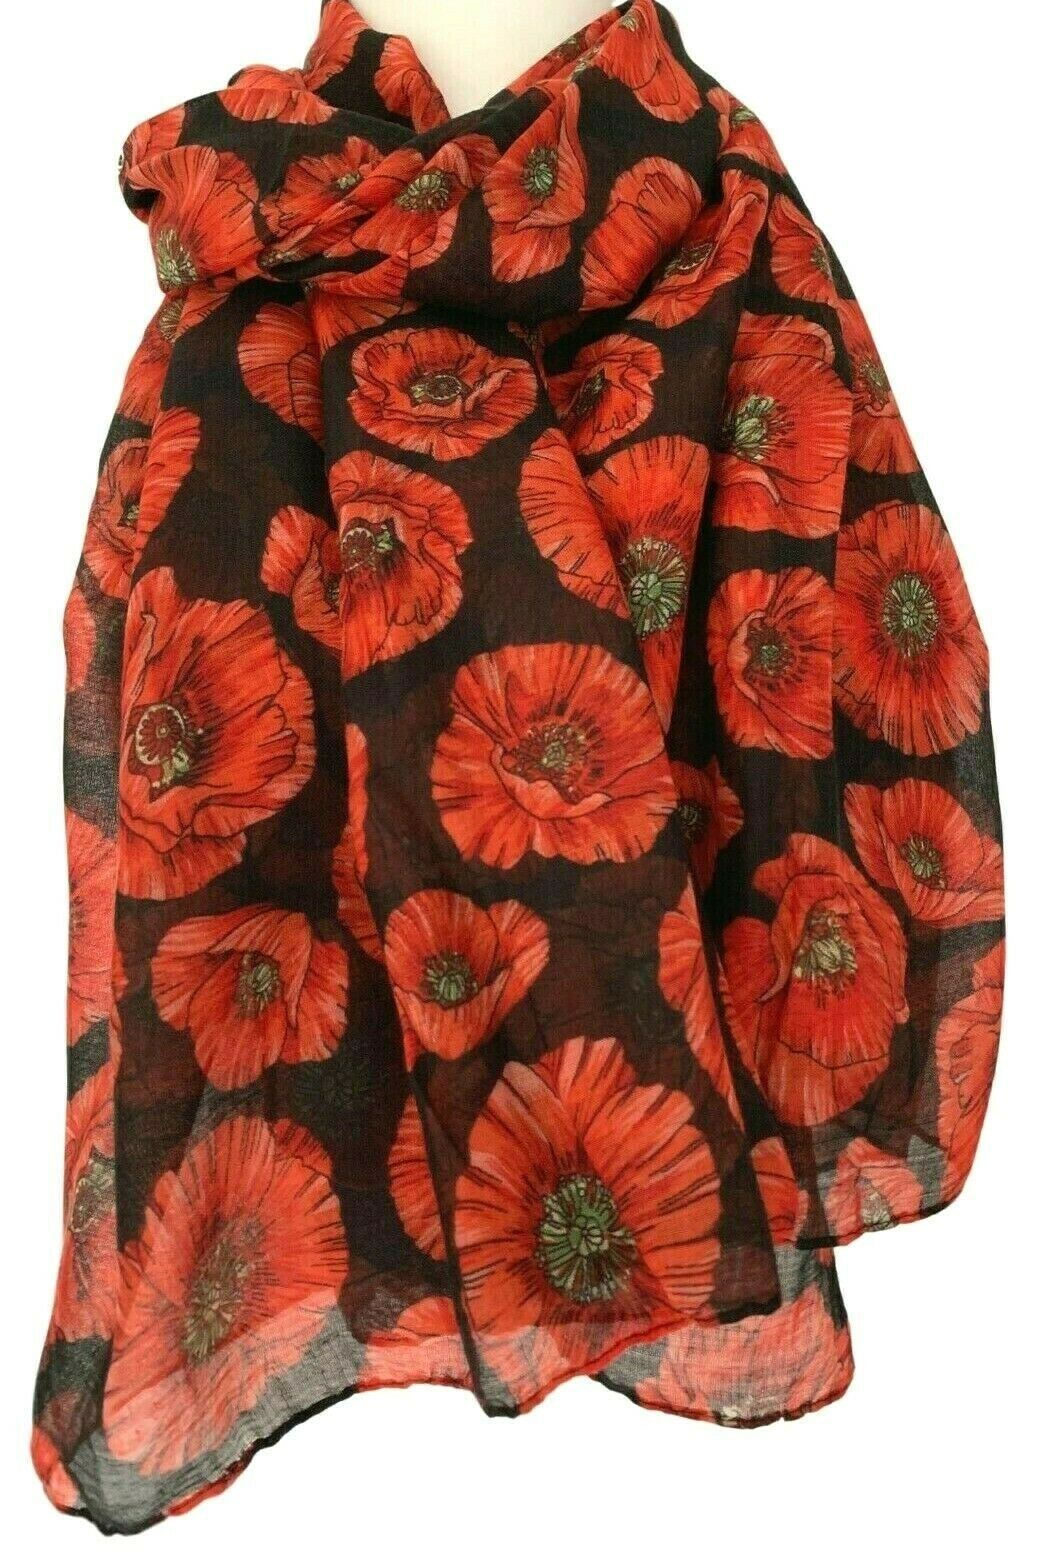 Red Poppy Scarf Ladies Large Flowers Wrap Floral Print Poppies Shawl New